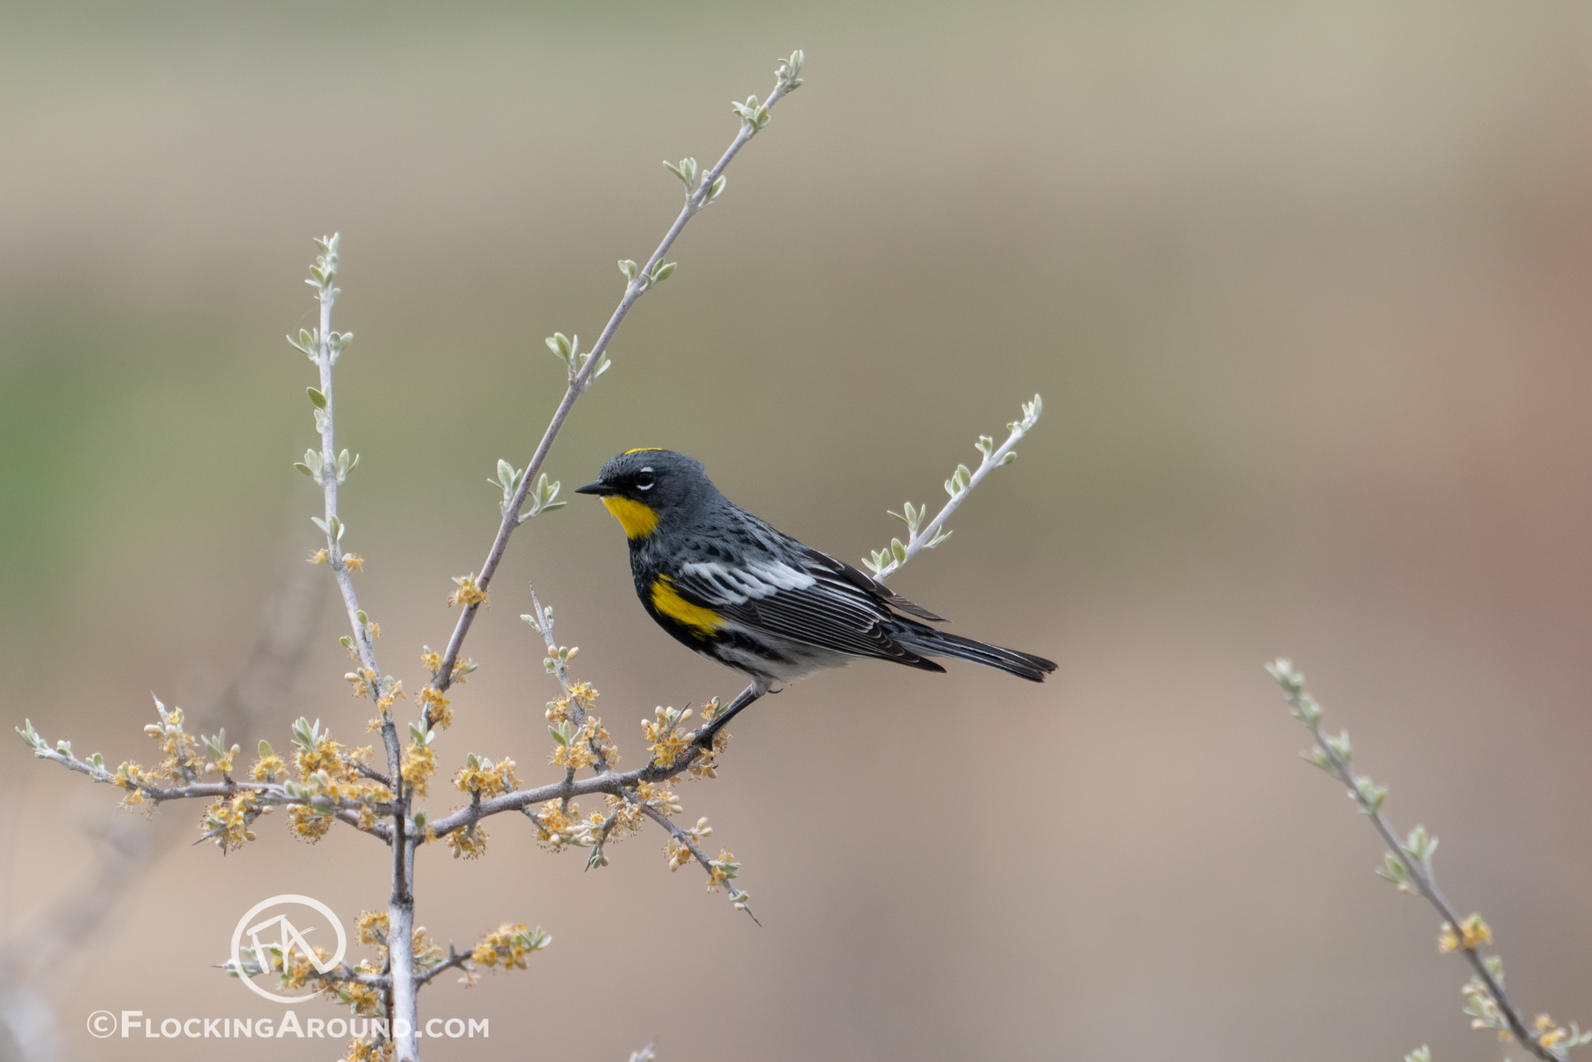 Adult Male Audubon's Yellow-rumped Warbler near Casper, Wyoming.